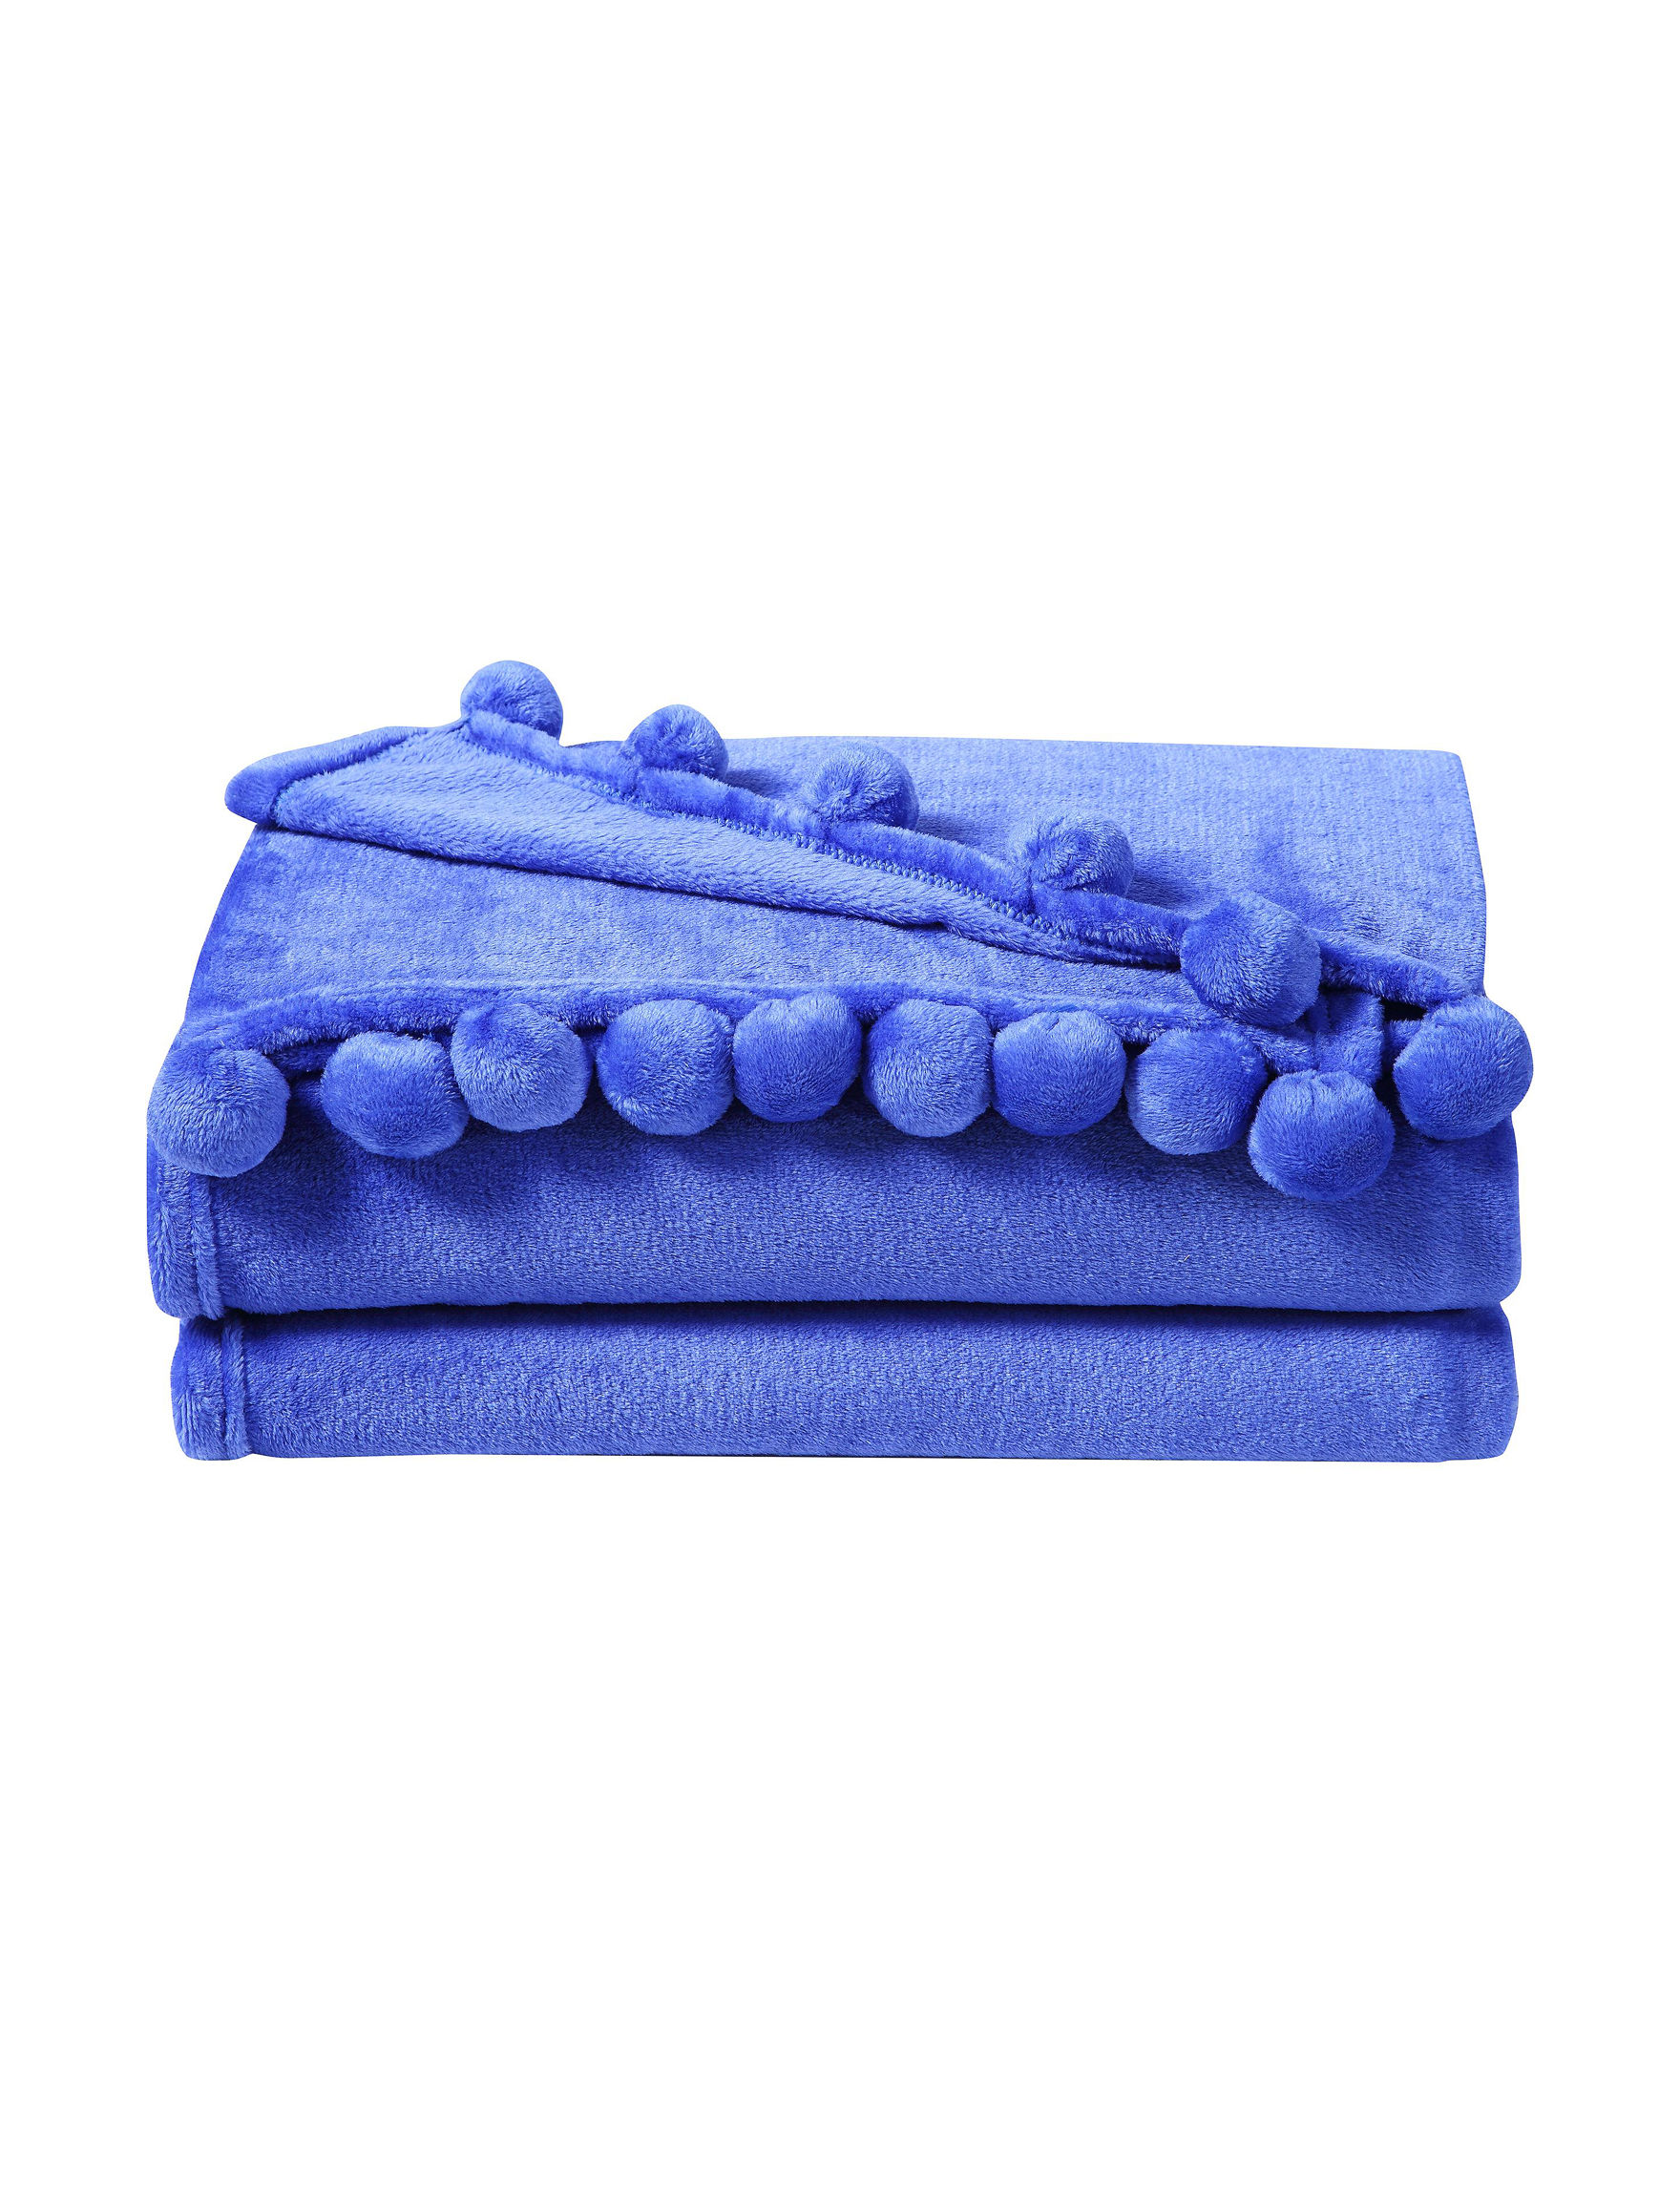 VCNY Home Blue Blankets & Throws